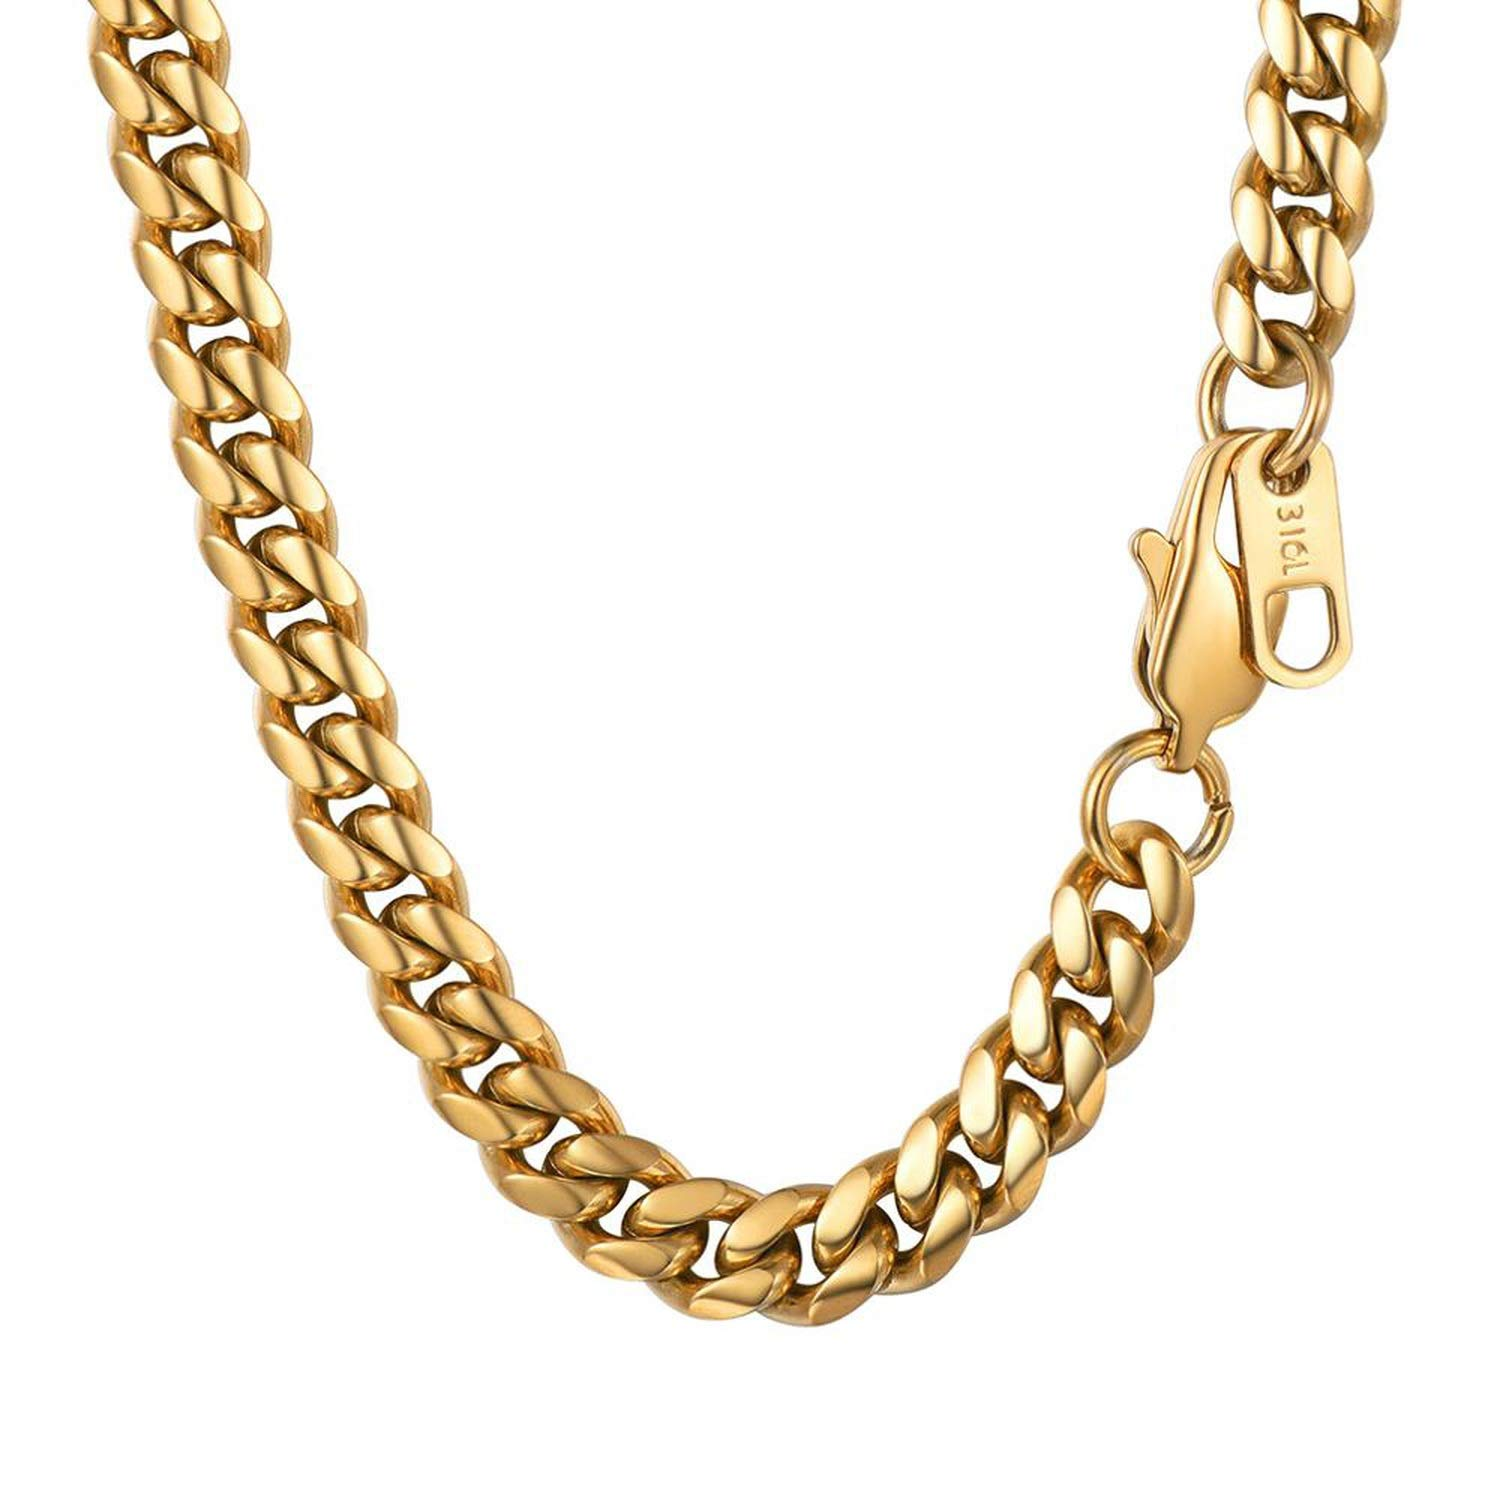 Zoe-clothes-store Mens Stainless Steel Cuban Link Chain Necklaces Gold Color Steel Curb Necklace for Men 6mm 18-30 Hiphop Jewelry